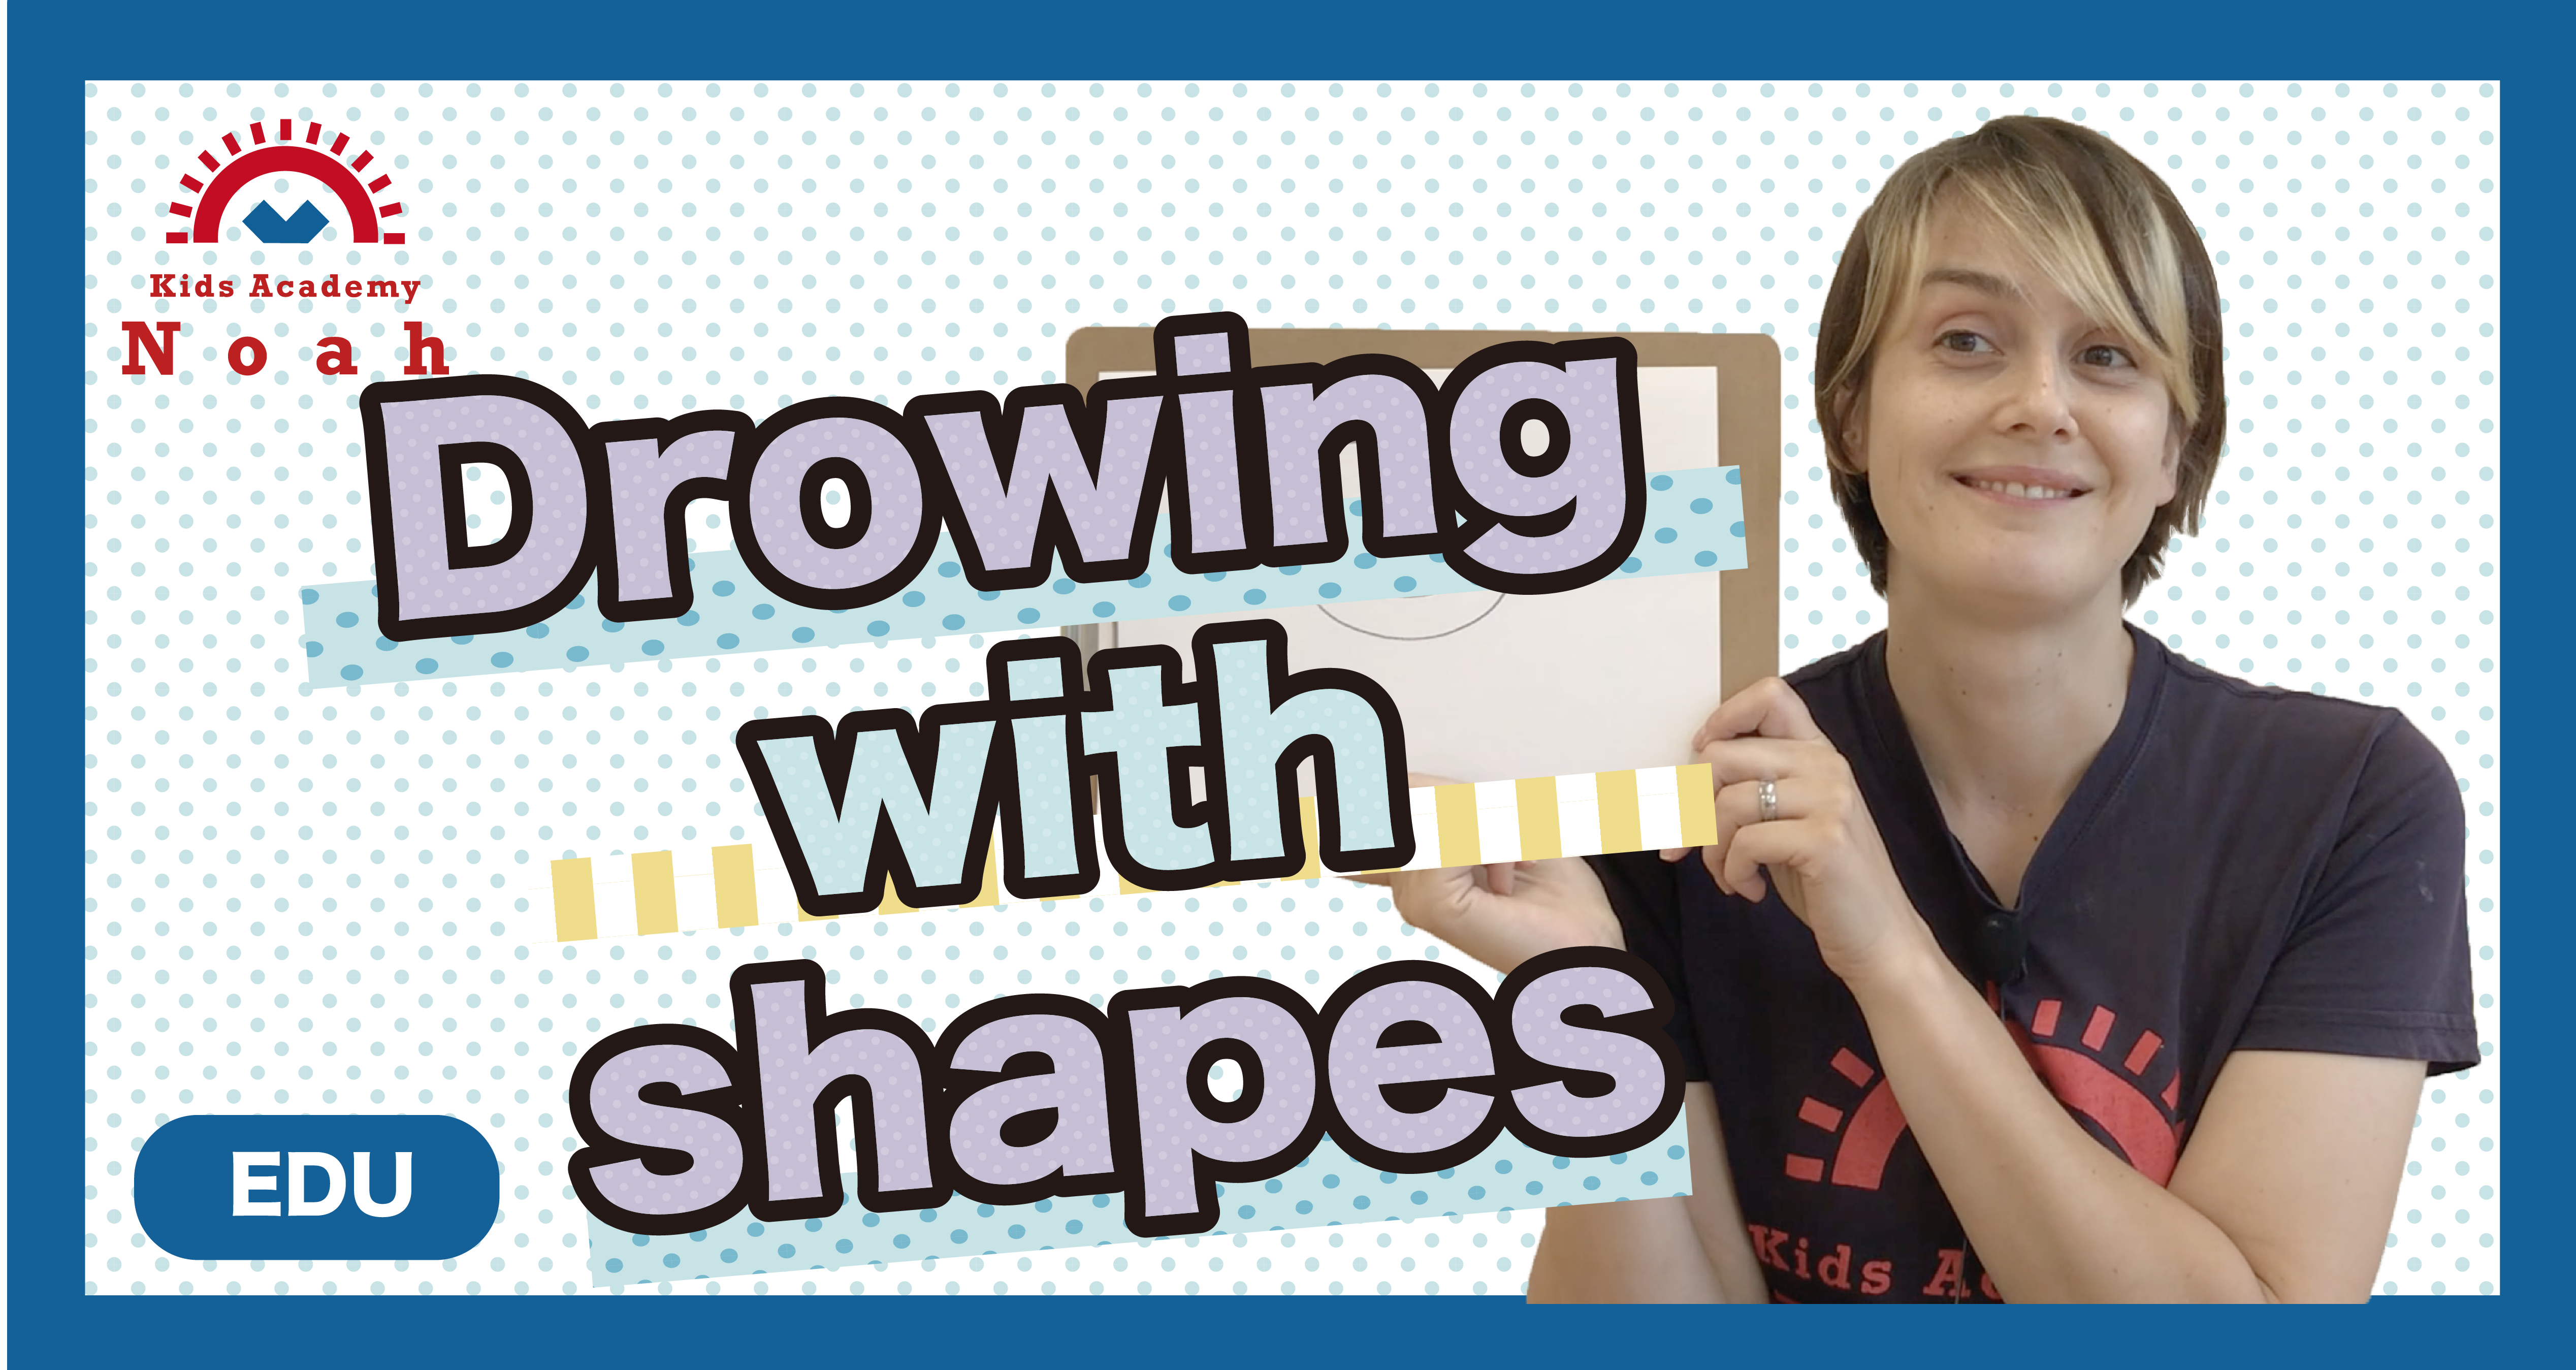 Drowing with shapes-EDU-